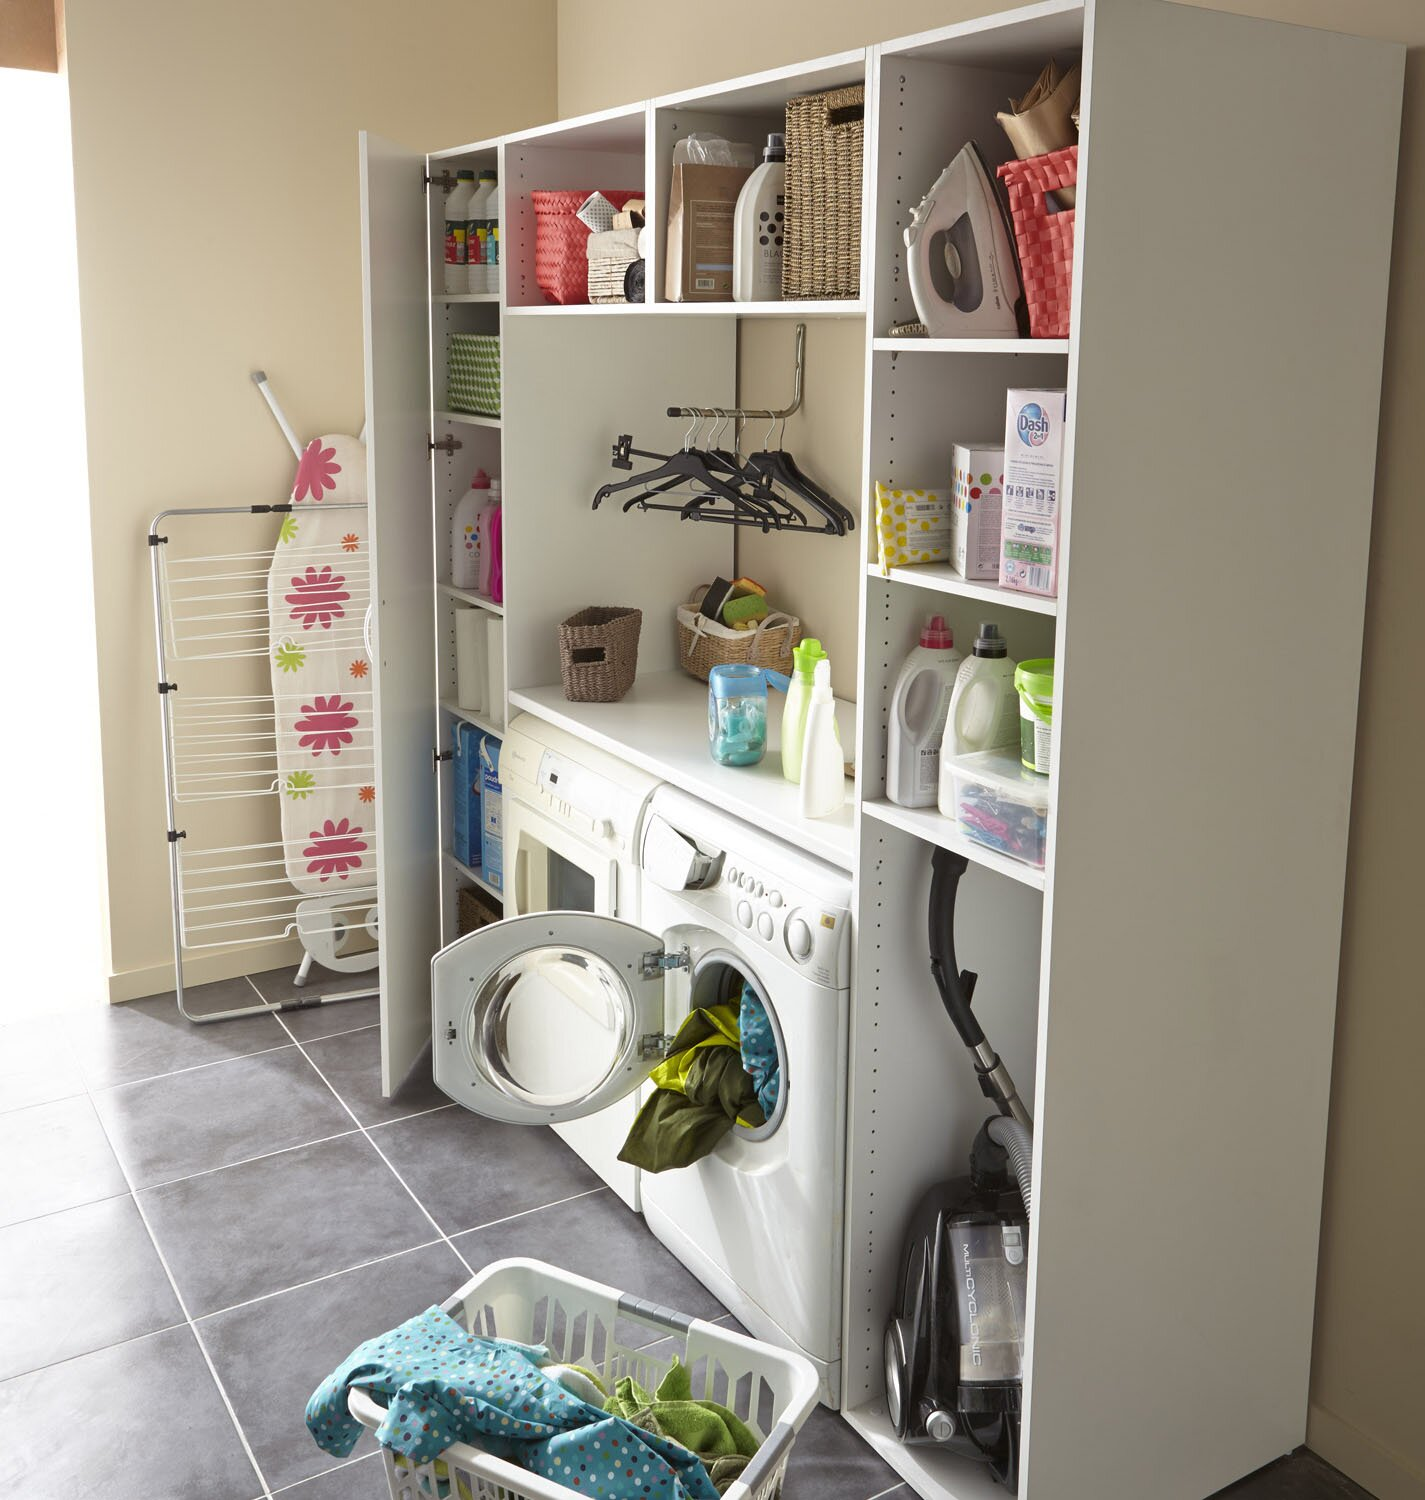 top 16 laundry room decor ideas with photos mostbeautifulthings. Black Bedroom Furniture Sets. Home Design Ideas